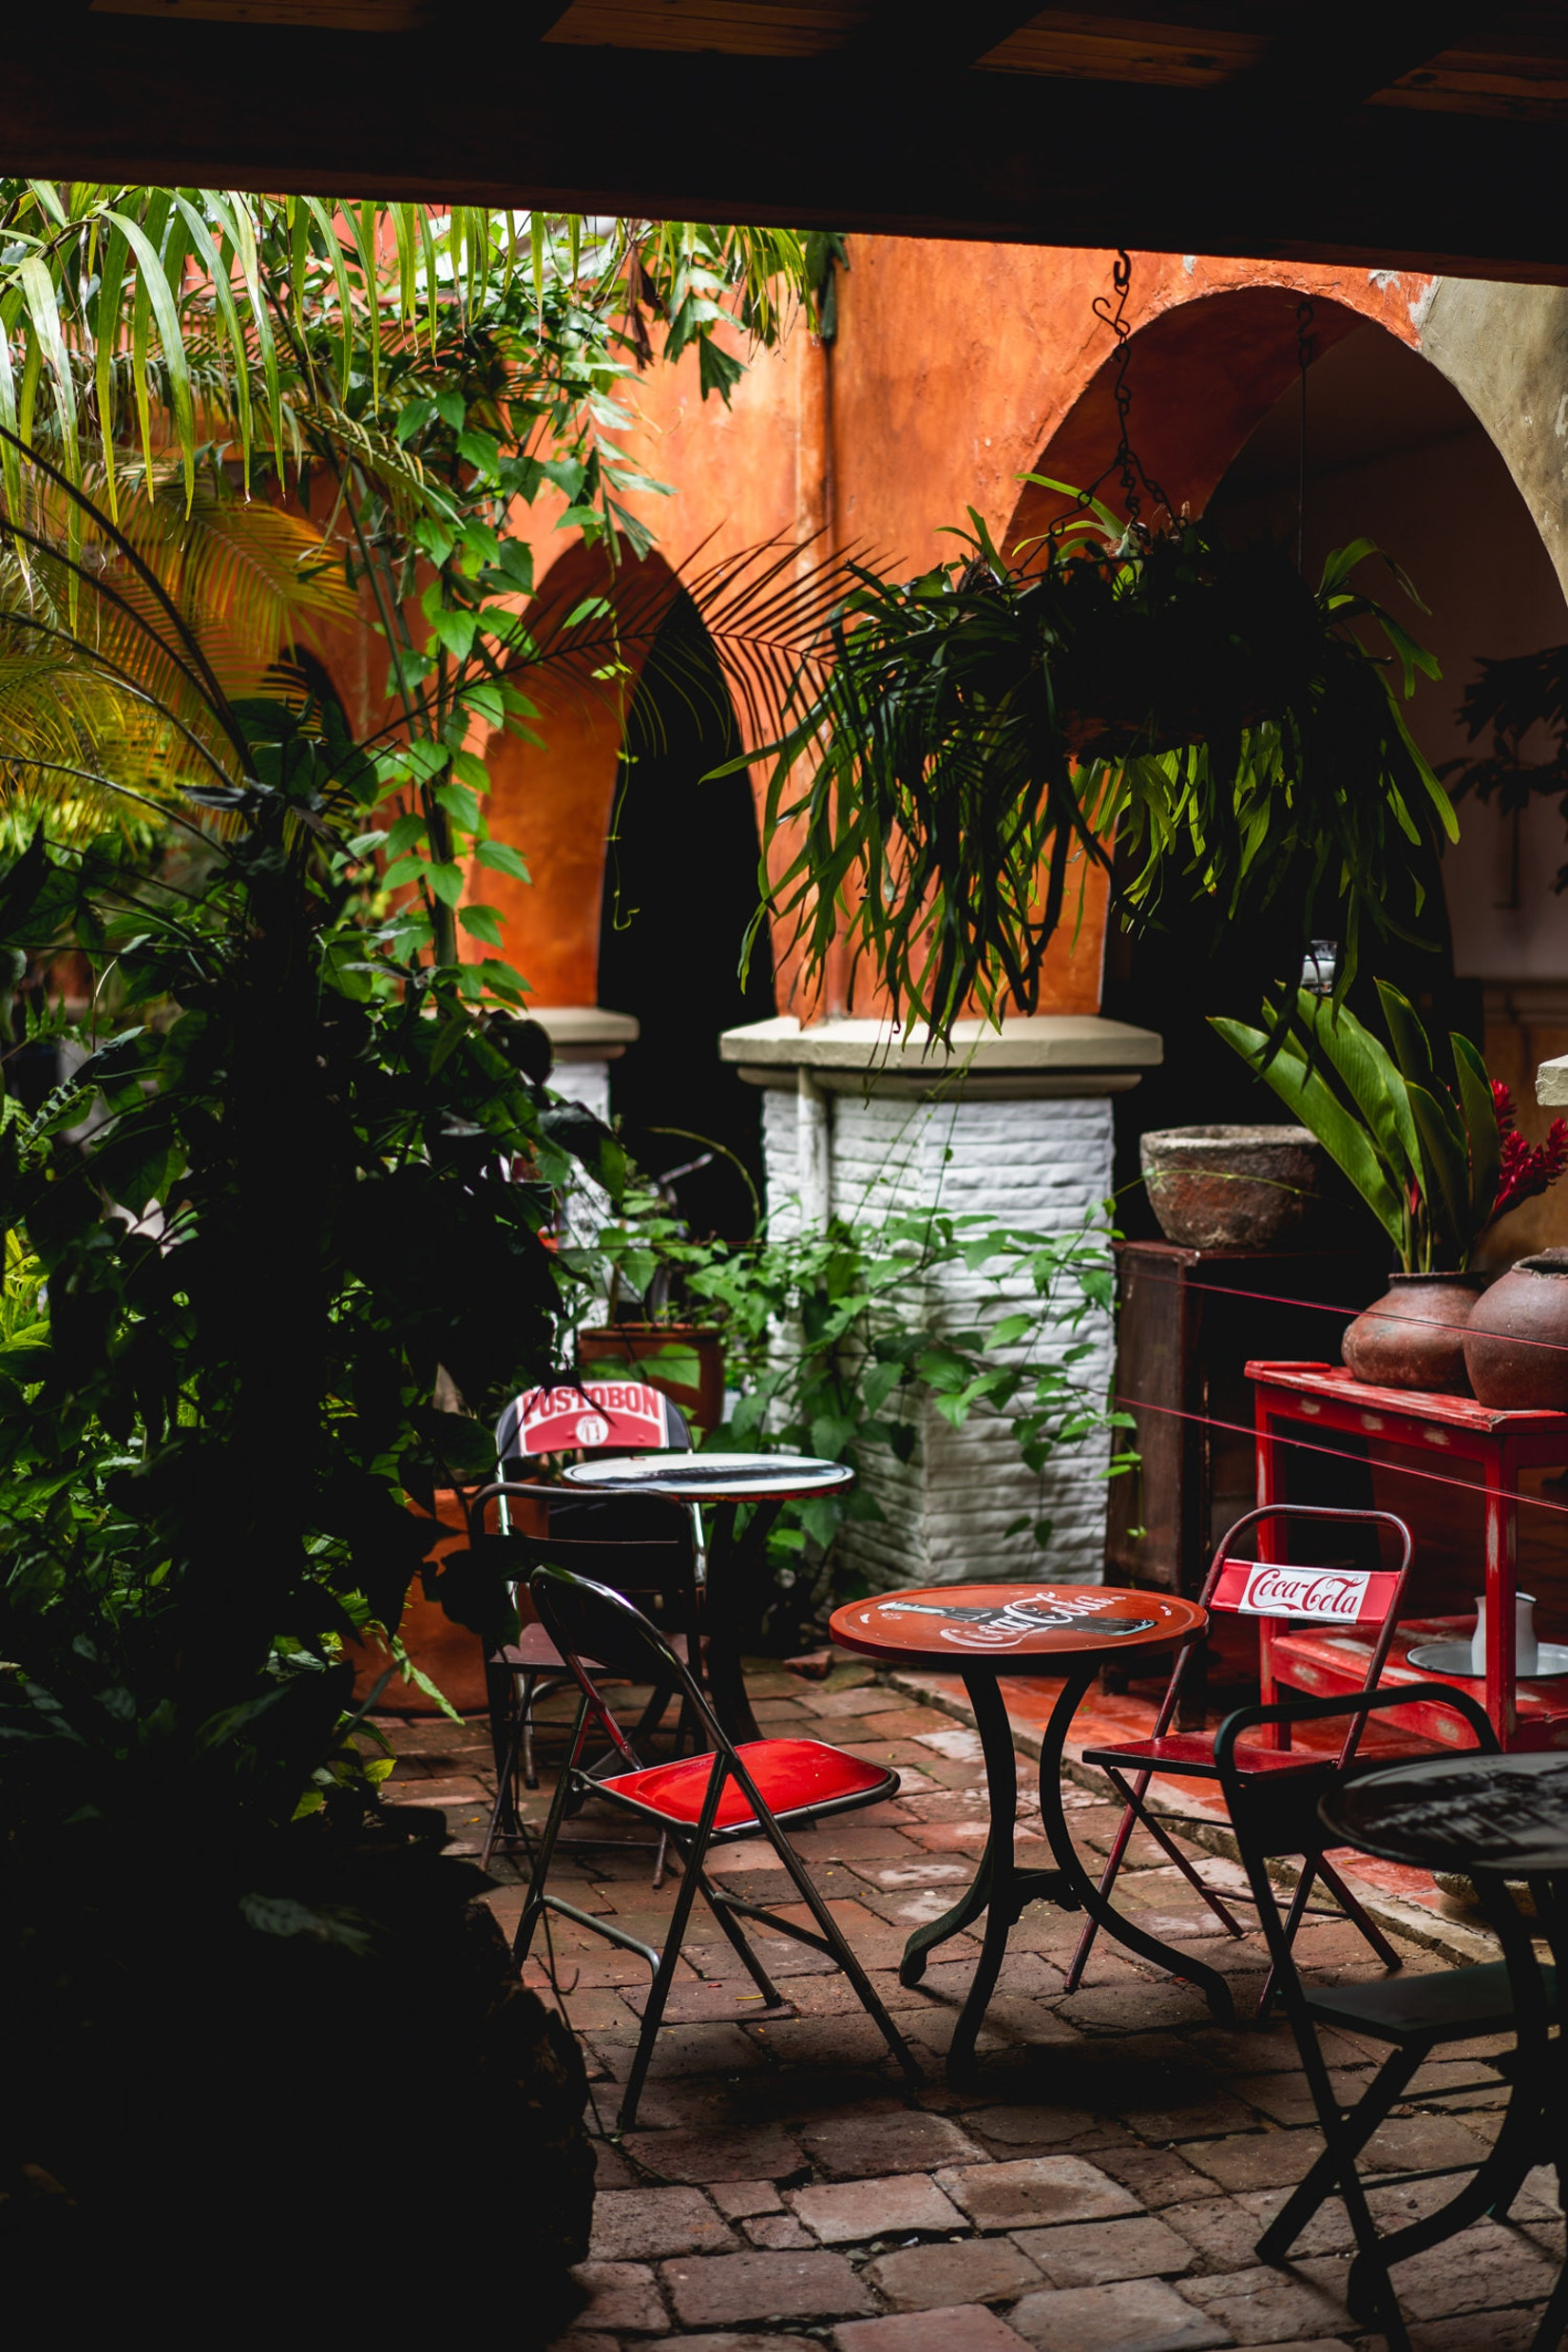 Courtyard at Hotel Mariscal Robledo with chairs and seating in an open area